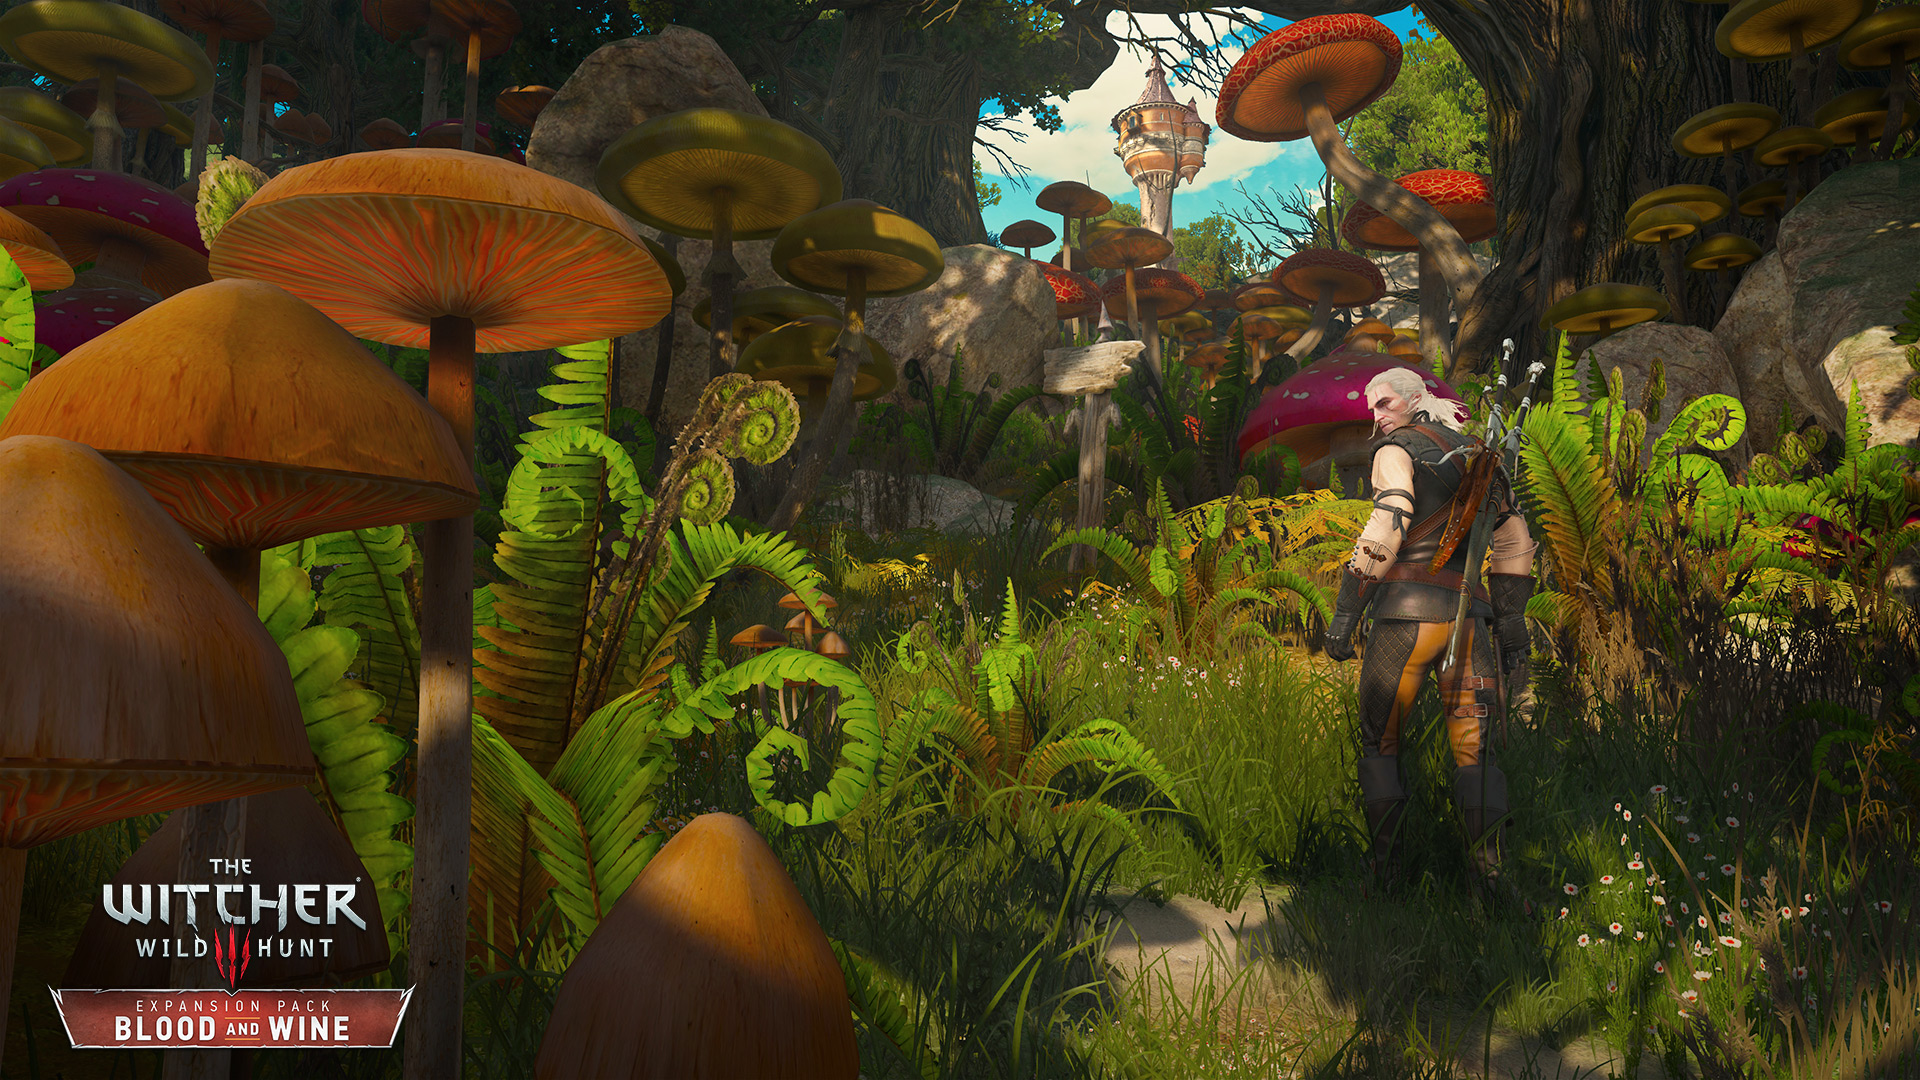 Witcher 3 Blood And Wine Launch Trailer Sets Up Geralts Final Hunt The Witcher 3 Wild Hunt Blood and Wine I think were not in Novigrad anymore RGB EN.0